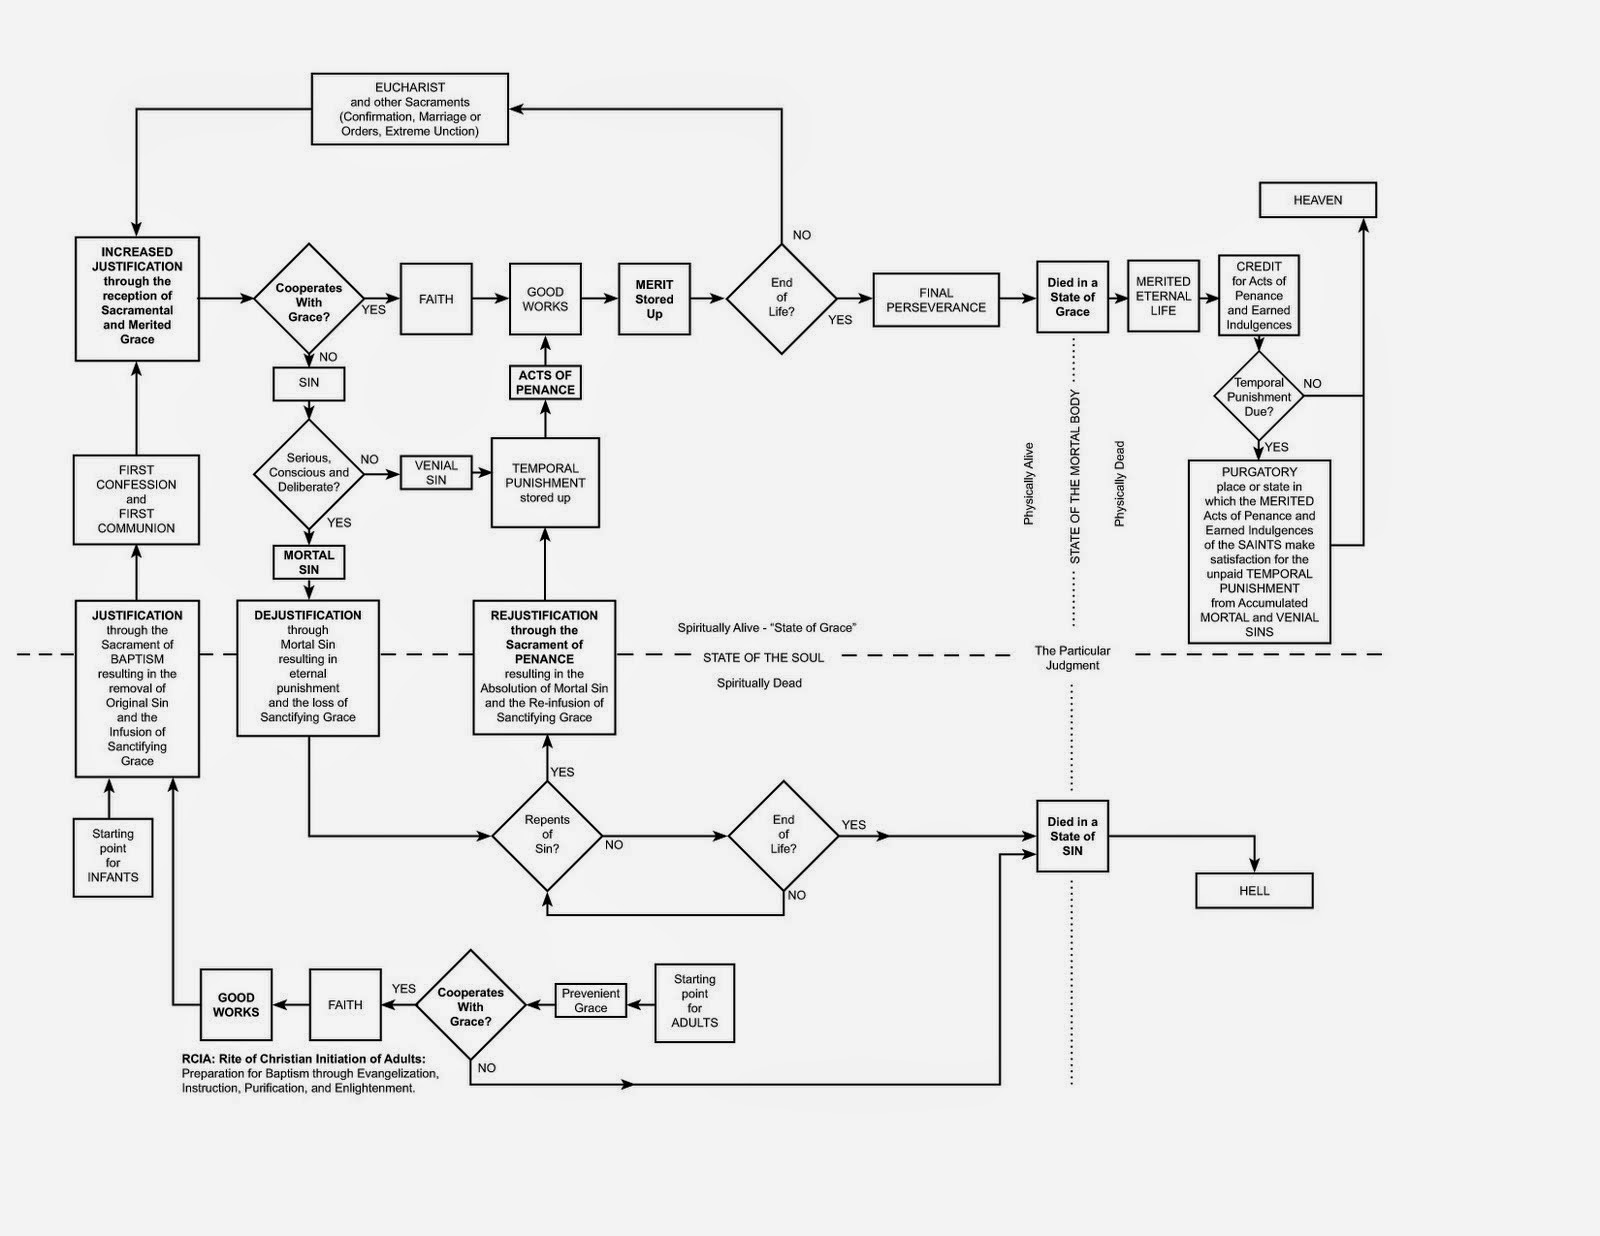 White rose review roman catholic flow chart the sacramental treadmill john bugay has the following chart in his piece entitled motivations he refers to this as the roman catholic sacramental treadmill negle Choice Image